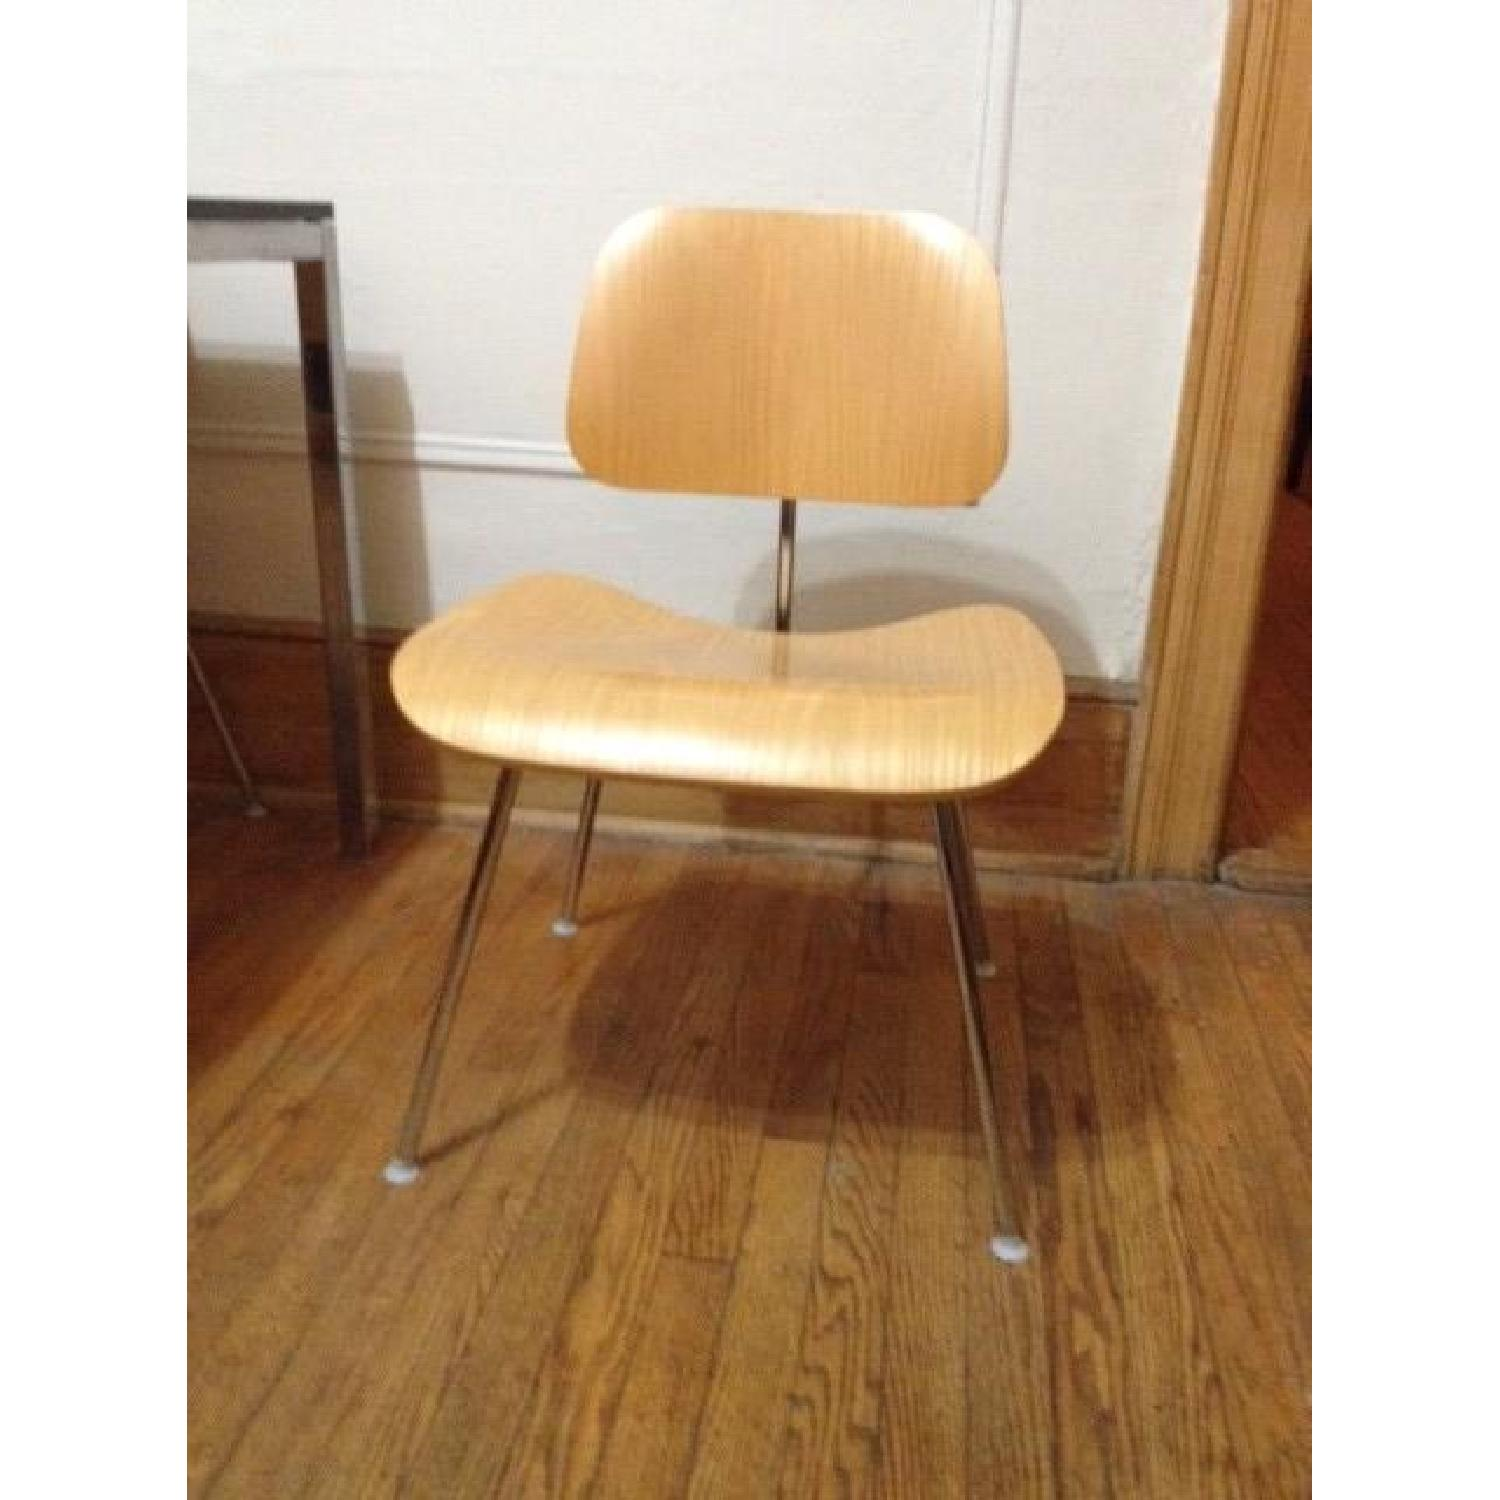 Charles and Ray Eames Dining Chairs - Pair - image-9